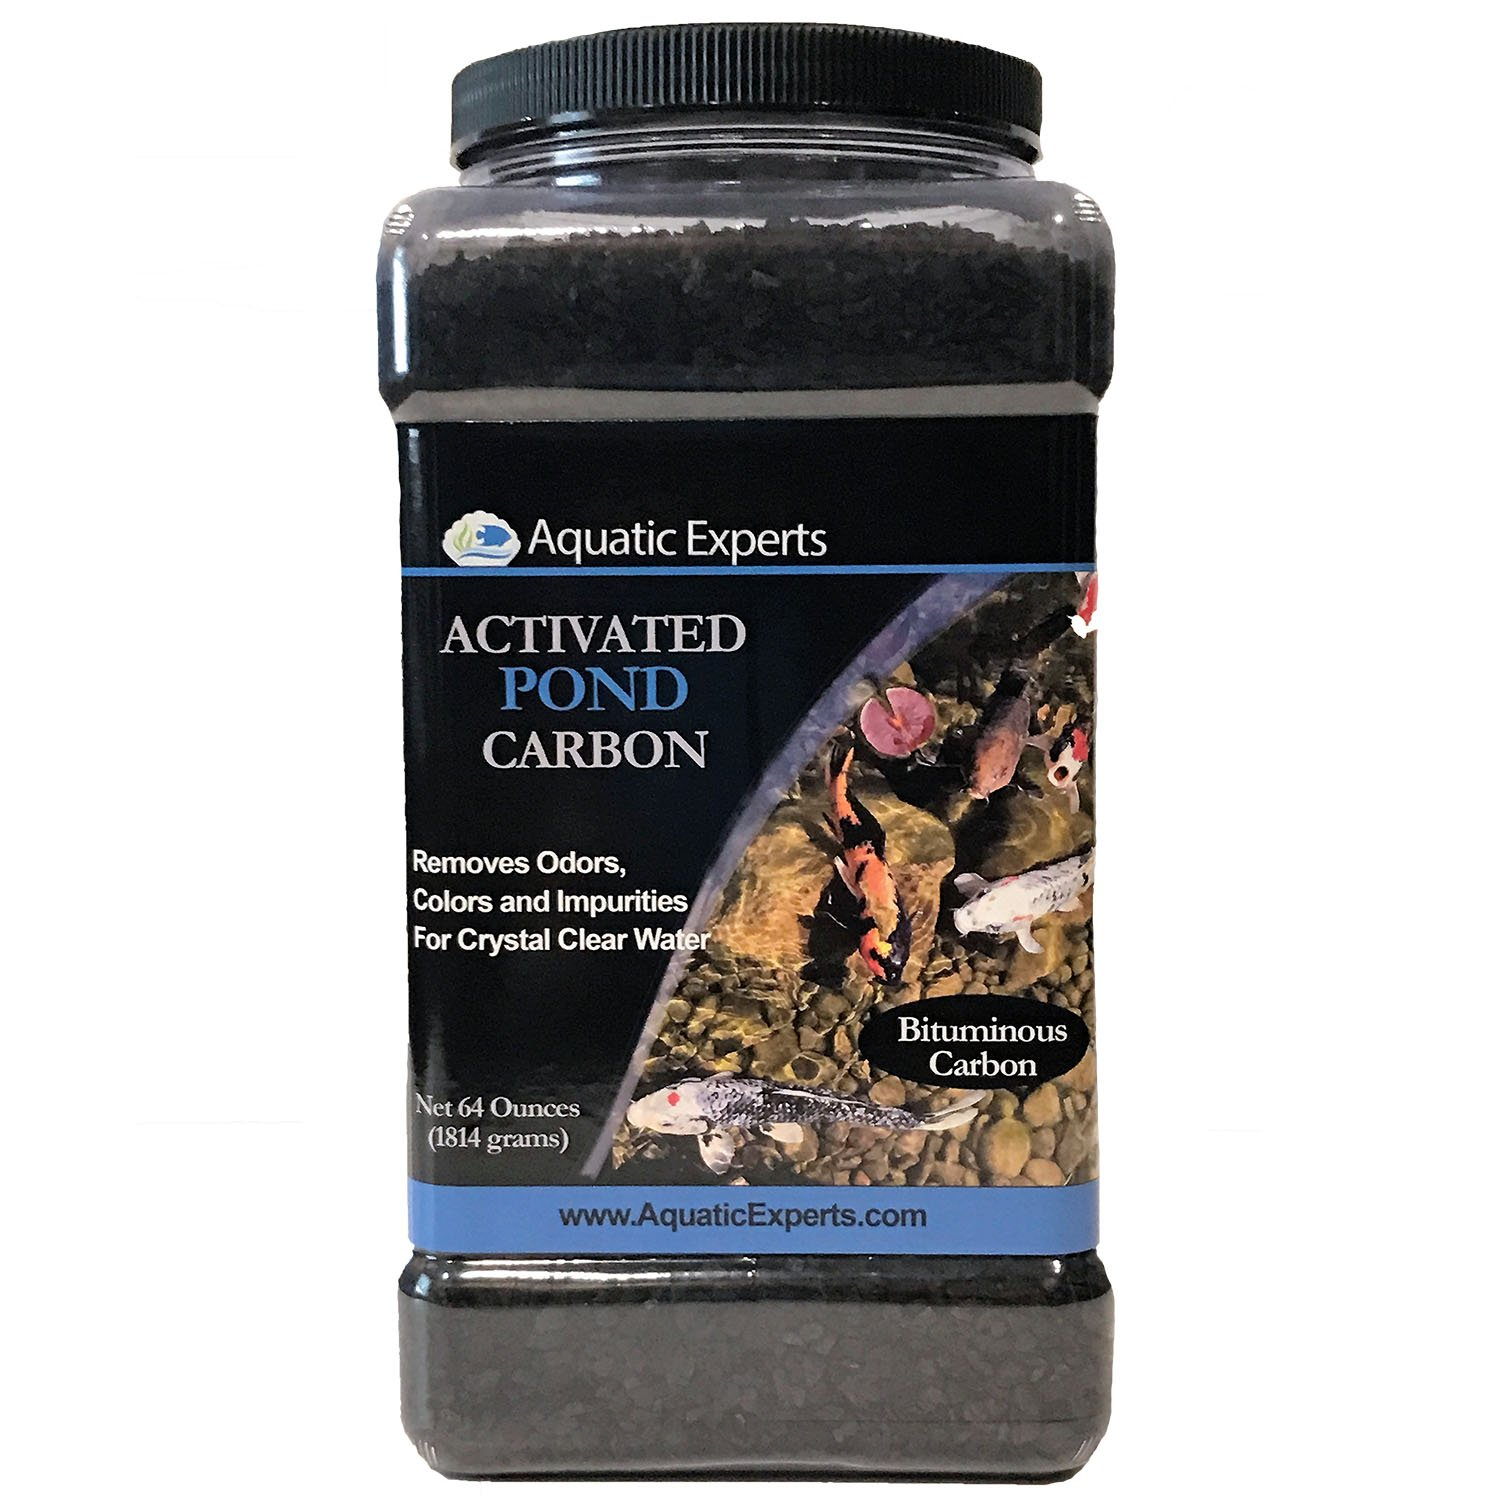 Aquatic Experts Activated Koi Pond Filter Carbon Charcoal - Remove odors and discoloration with 64 ounce bulk container for Outdoor Water Gardens by USA